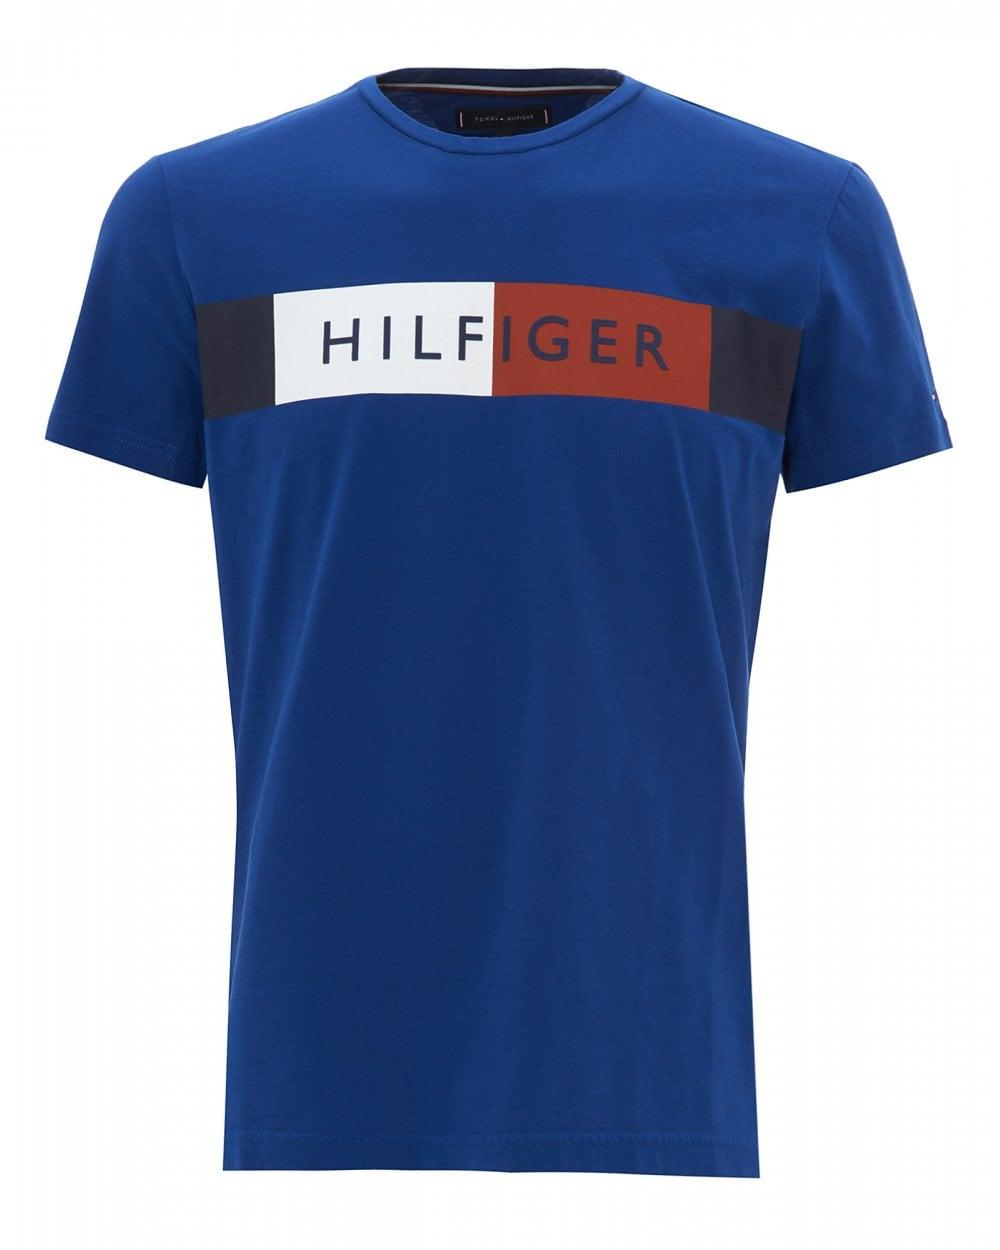 5f1abfe6b Tommy Hilfiger Chest Stripe T-shirt, Colour Block Blue Tee in Blue ...